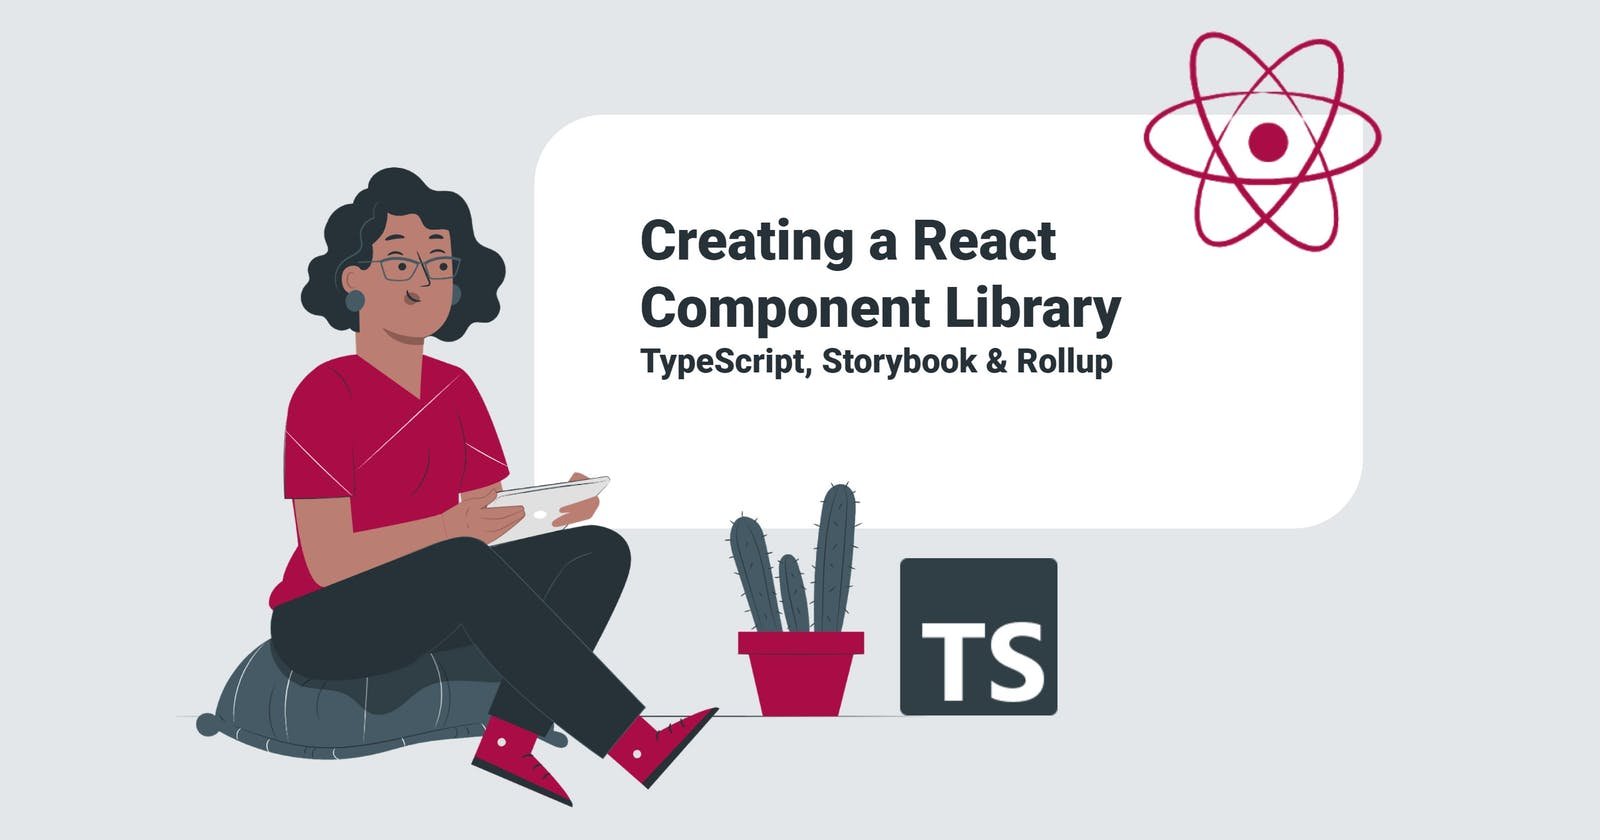 Creating a React Component Library with TypeScript, Storybook & Rollup